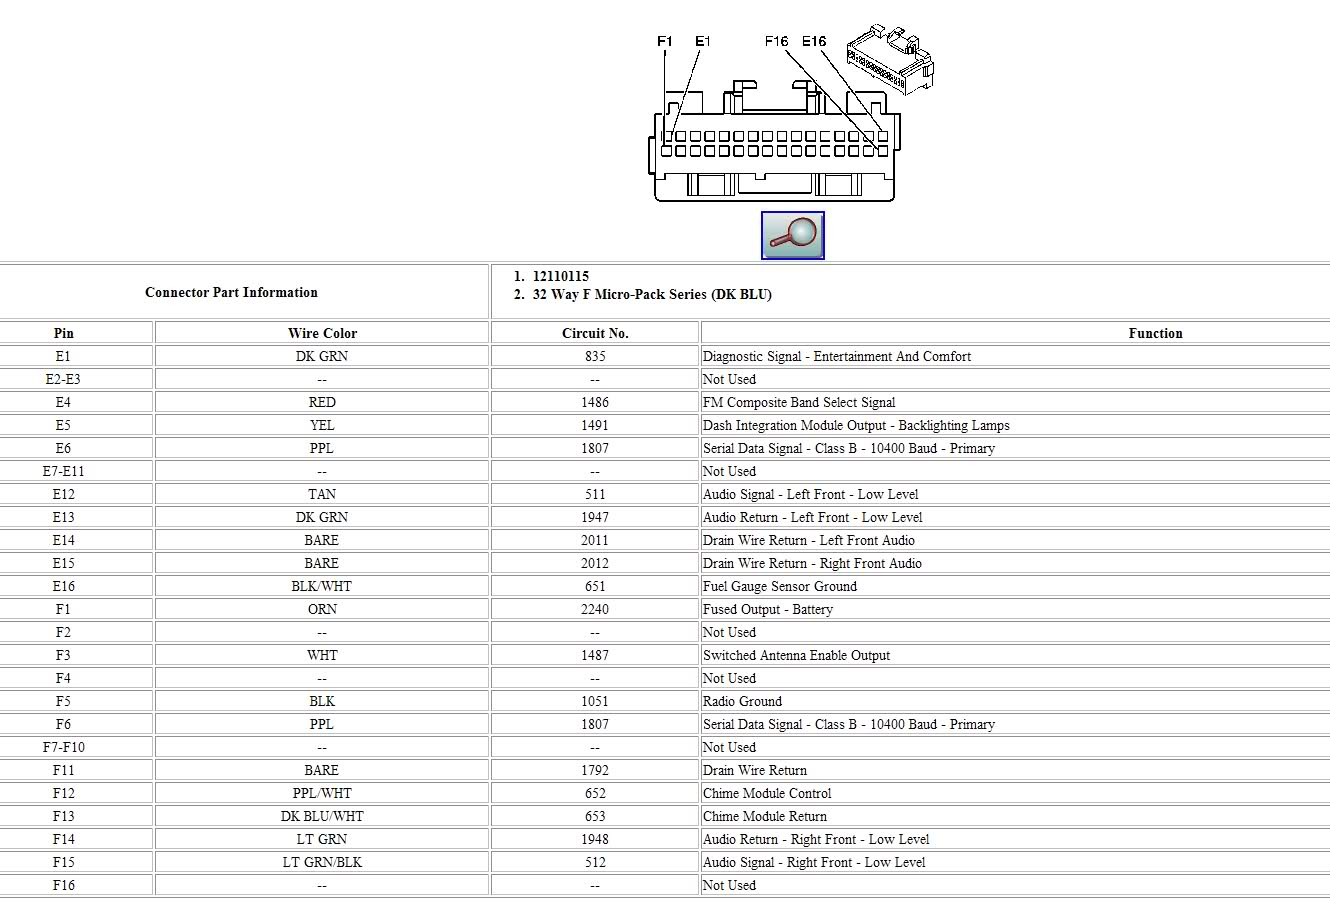 2000 Cadillac Seville Radio Wiring Diagram - Wiring Diagram All dog-value -  dog-value.huevoprint.it | Wiring Diagram For 2003 Cadillac Sls |  | Huevoprint